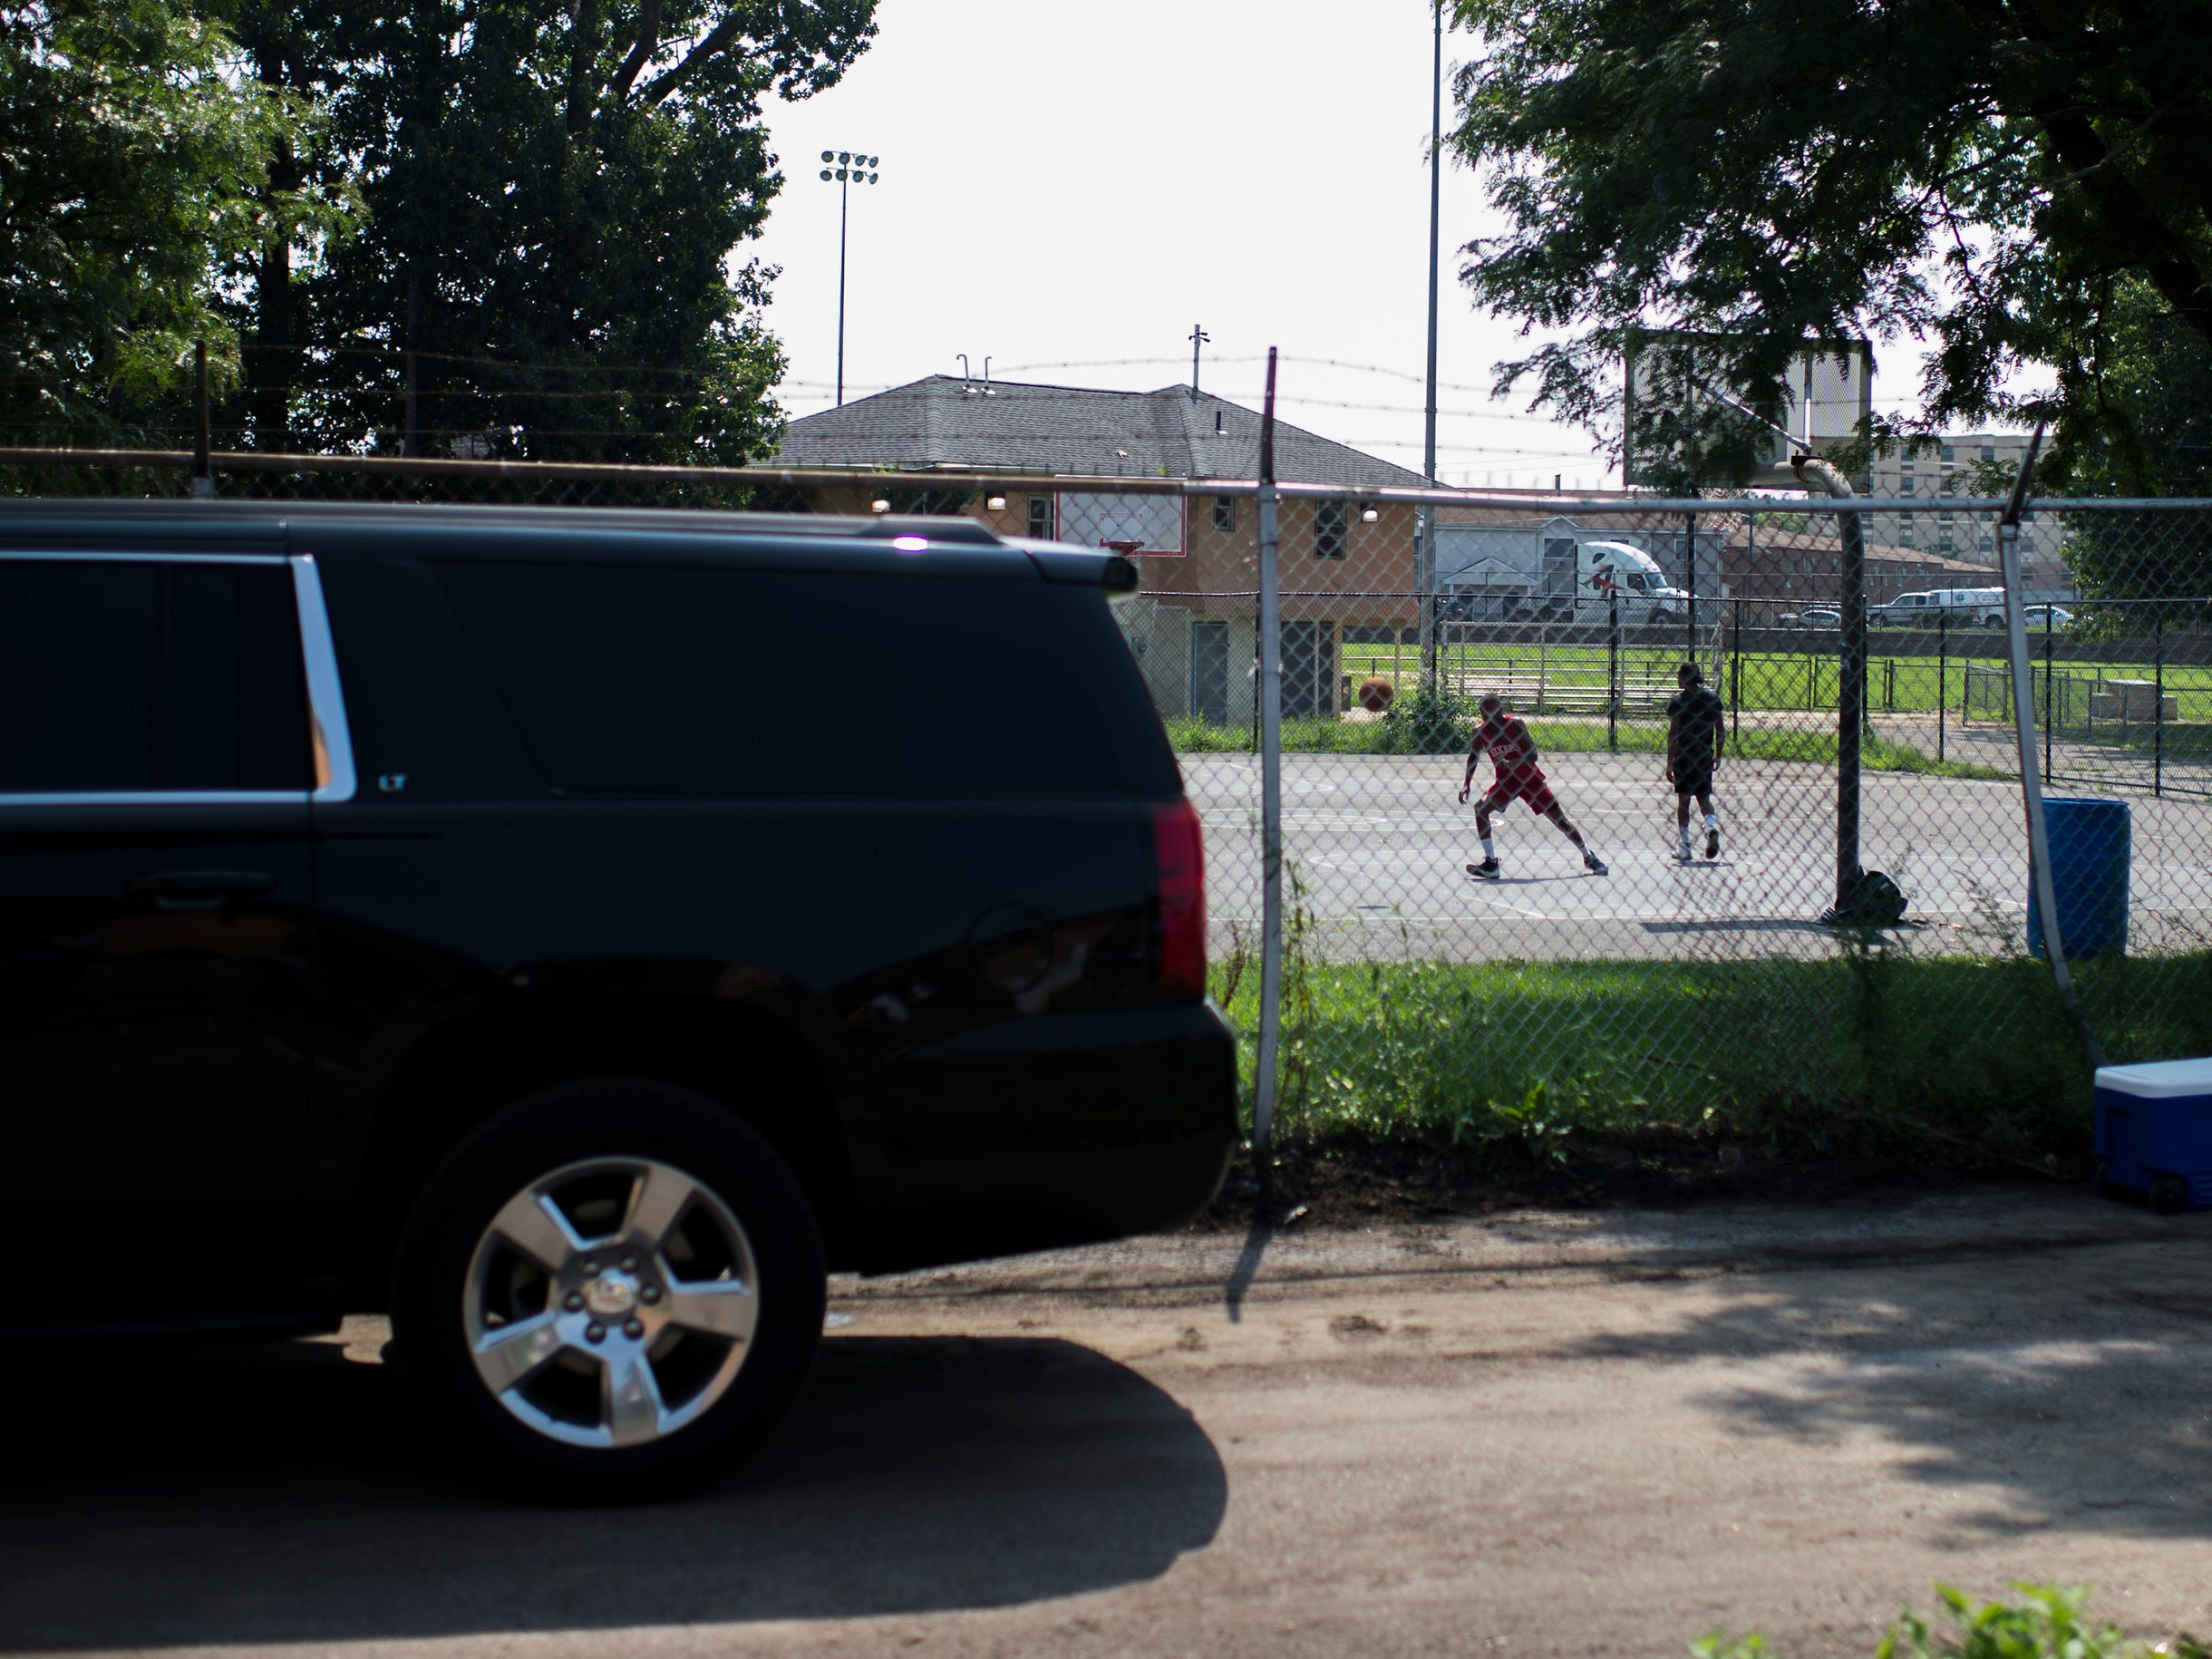 A pickup game is played next to the run-down Camden Labs site Wednesday, Aug. 15, 2018 in Camden, N.J. The former toxic and illegal dumping site will be cleaned and cleared to make way for recreational open space.